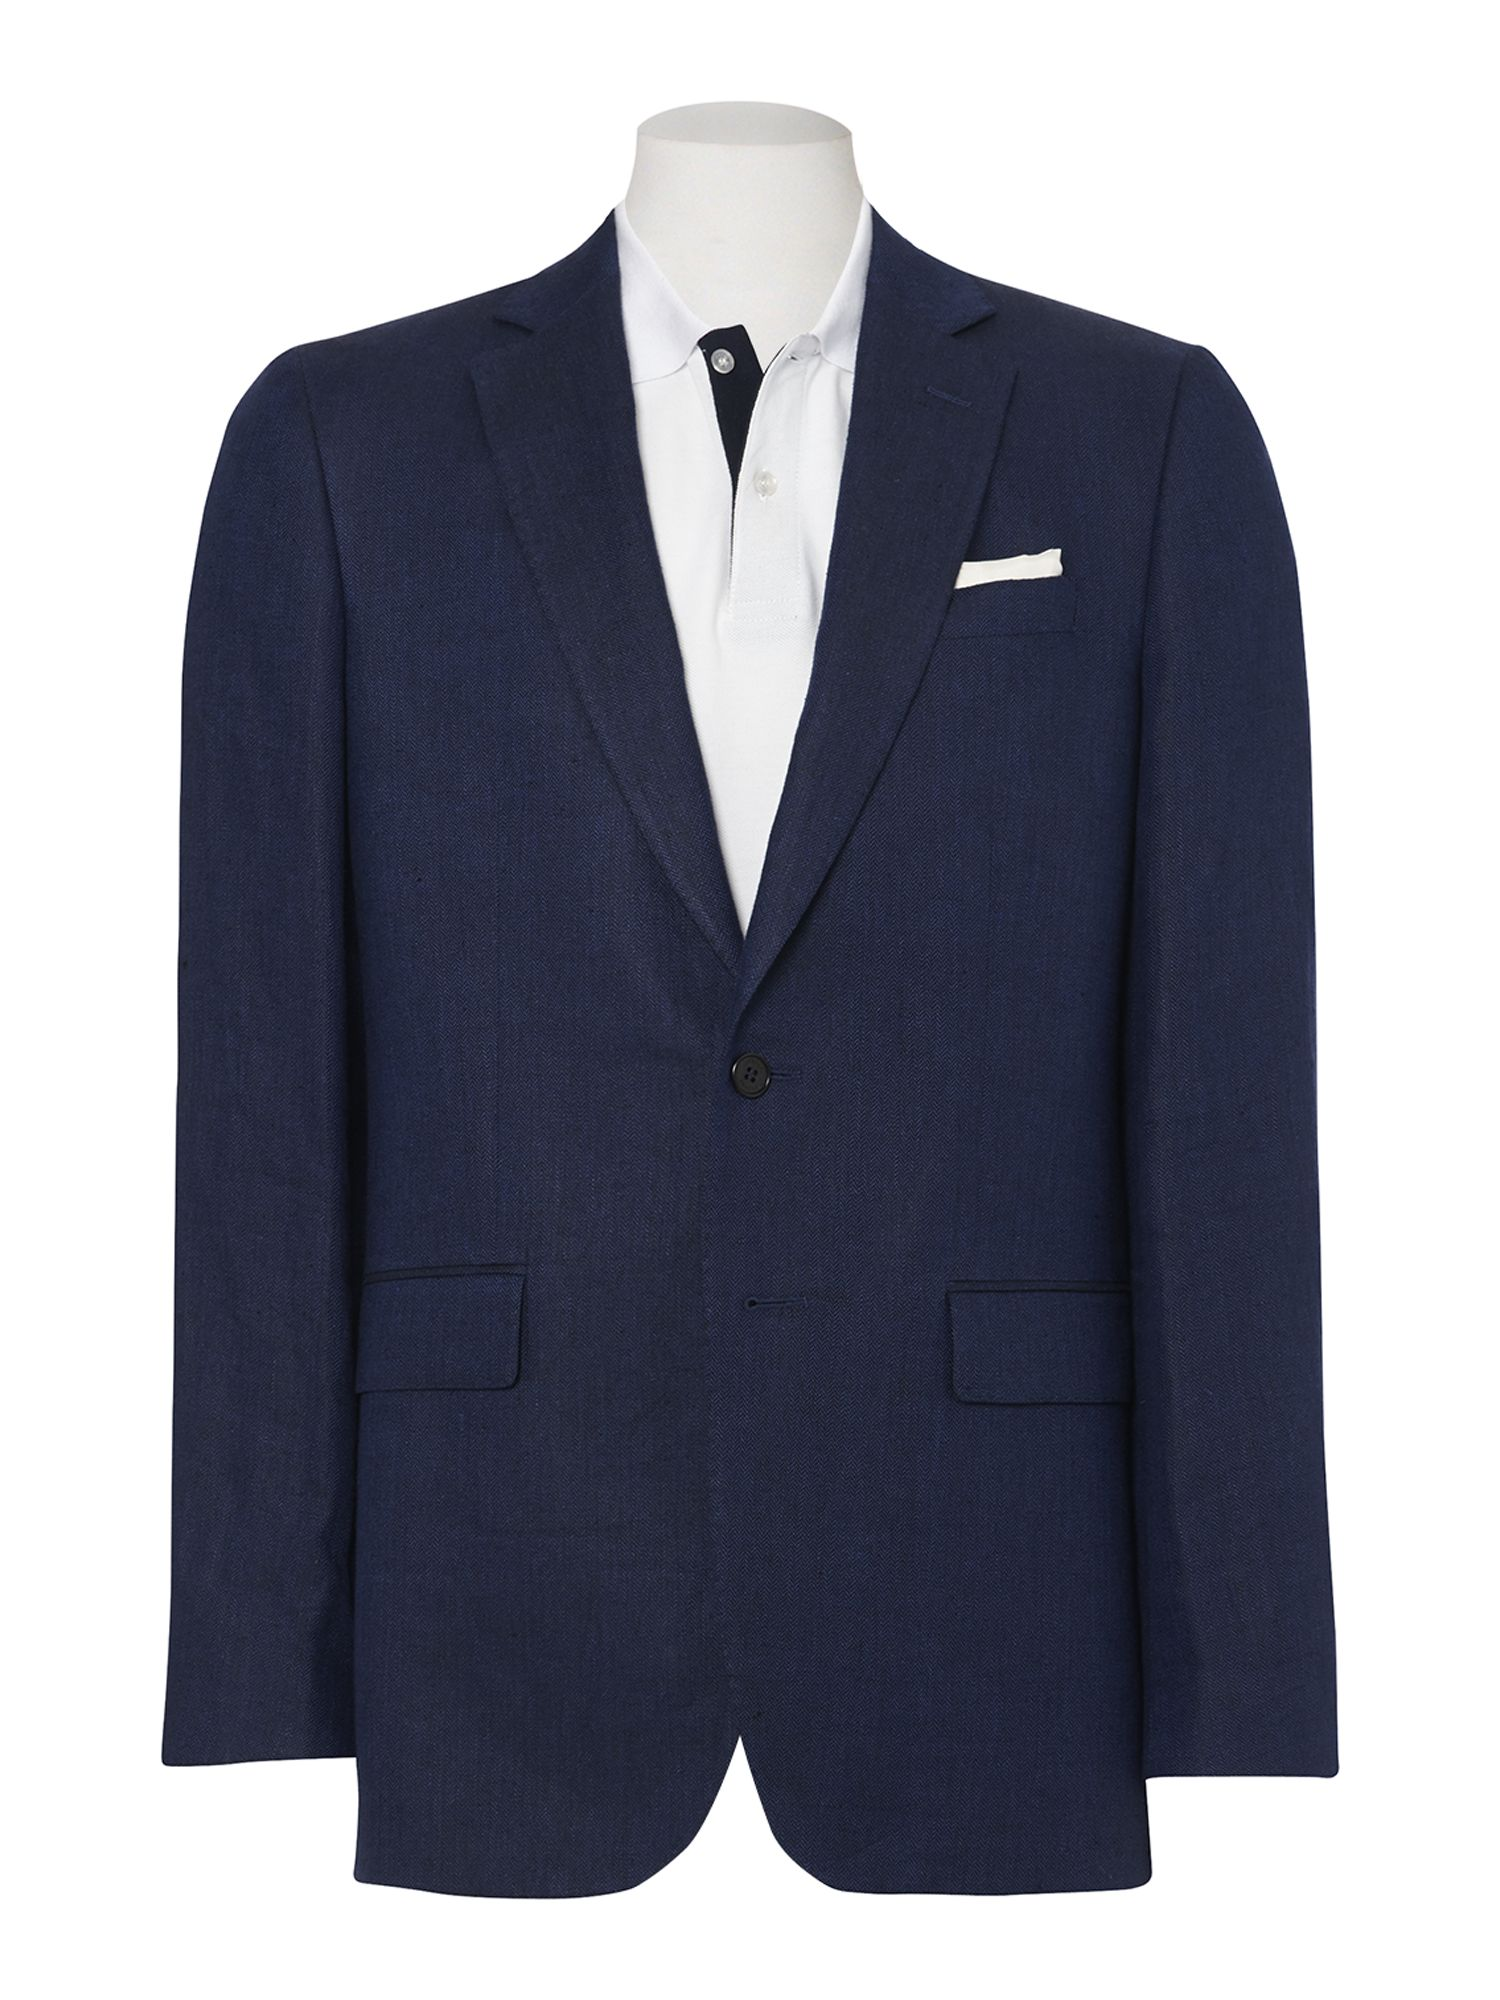 Herringbone single breasted suit jacket